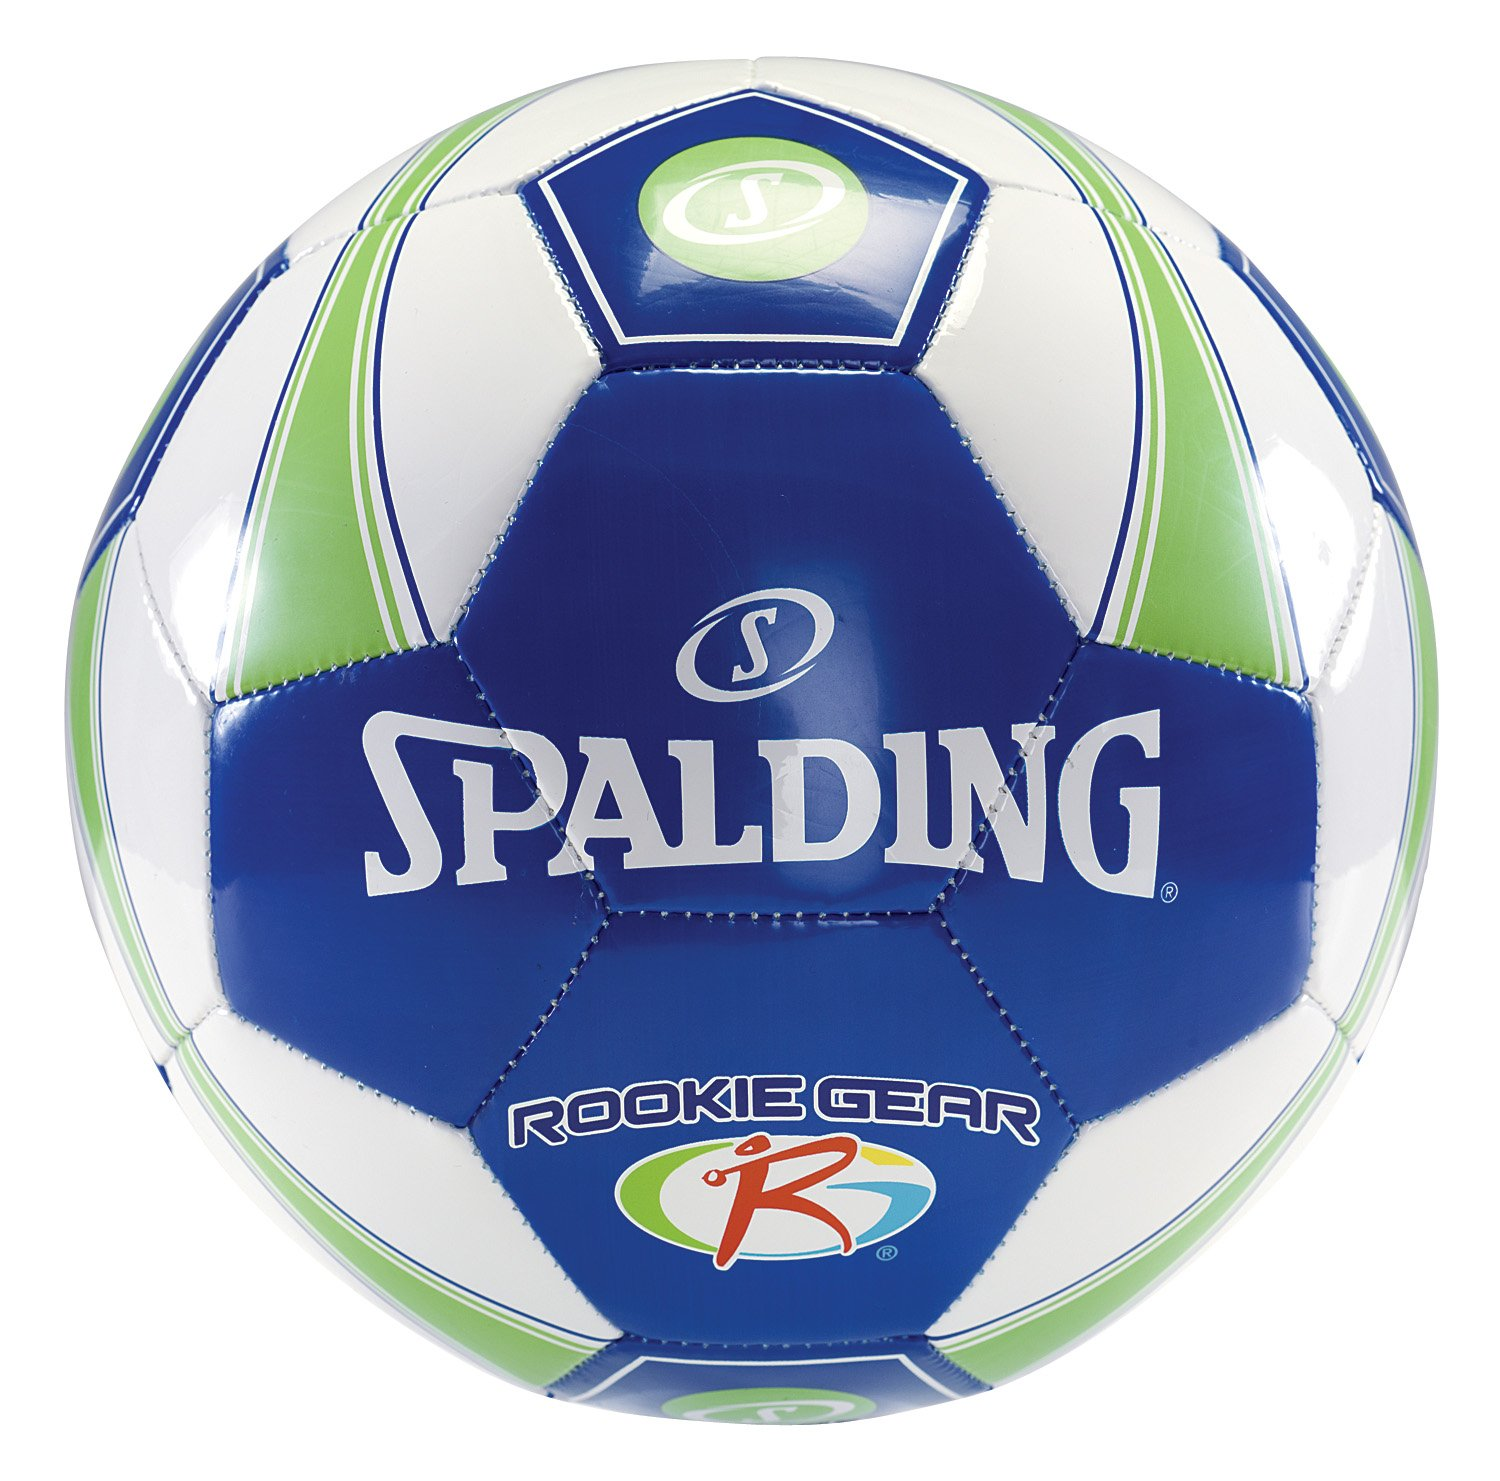 amazon com spalding rookie gear soccer ball blue green size 3